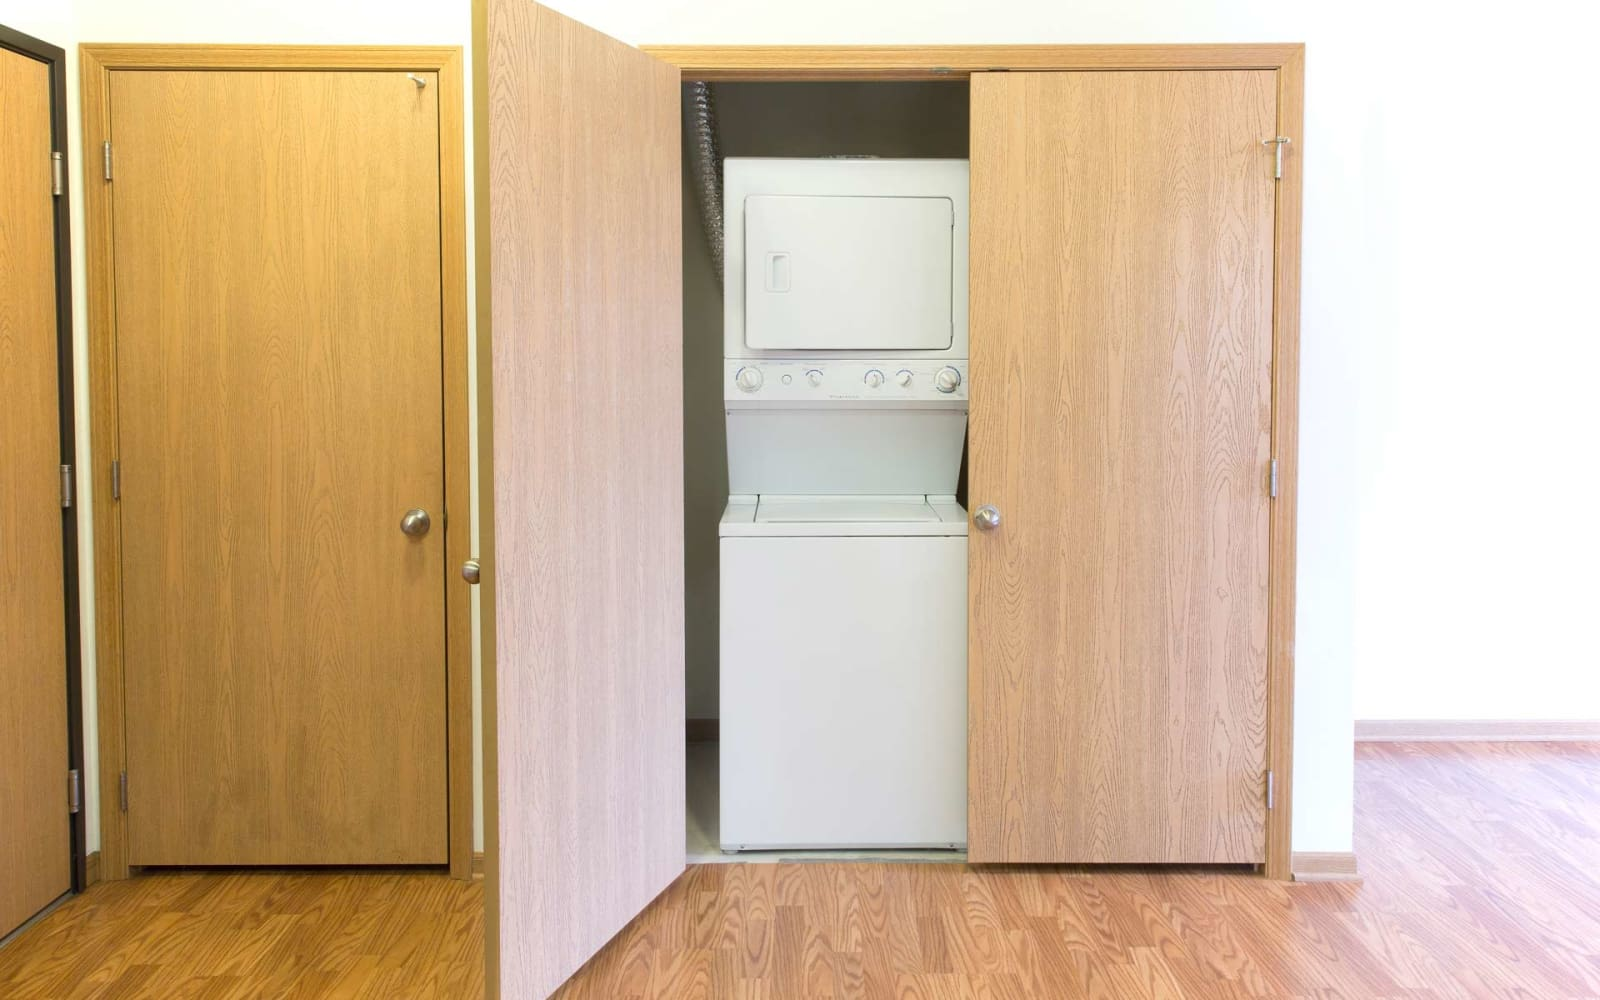 A stacked washer and dryer in it's own room at Westwood Village in Ames, Iowa